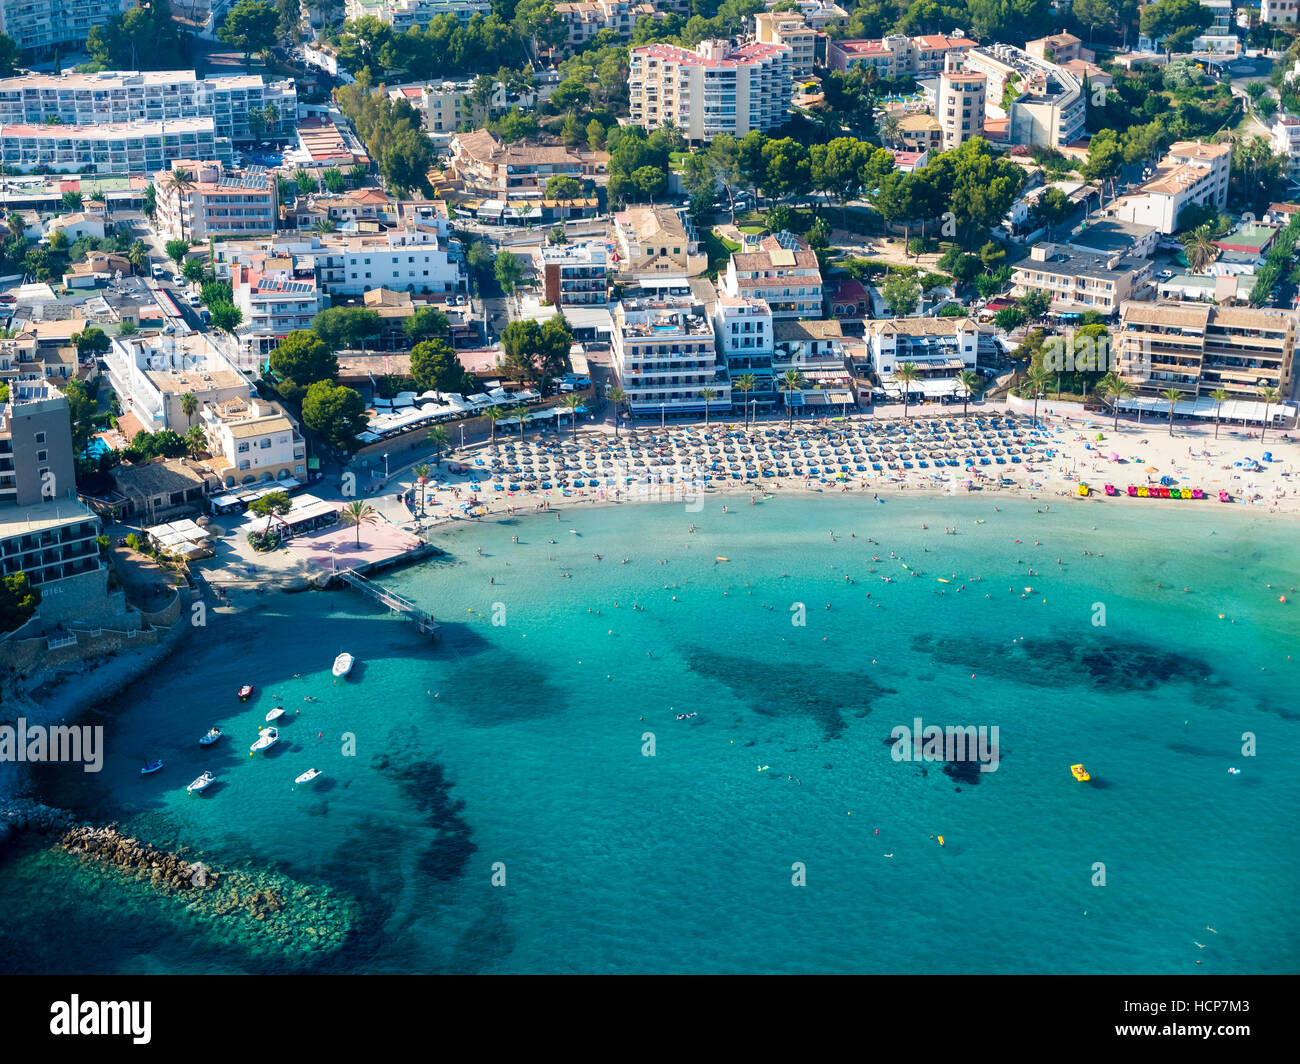 Aerial photograph, view of bay and beach of Peguera, Mallorca, Balearic Islands, Spain - Stock Image